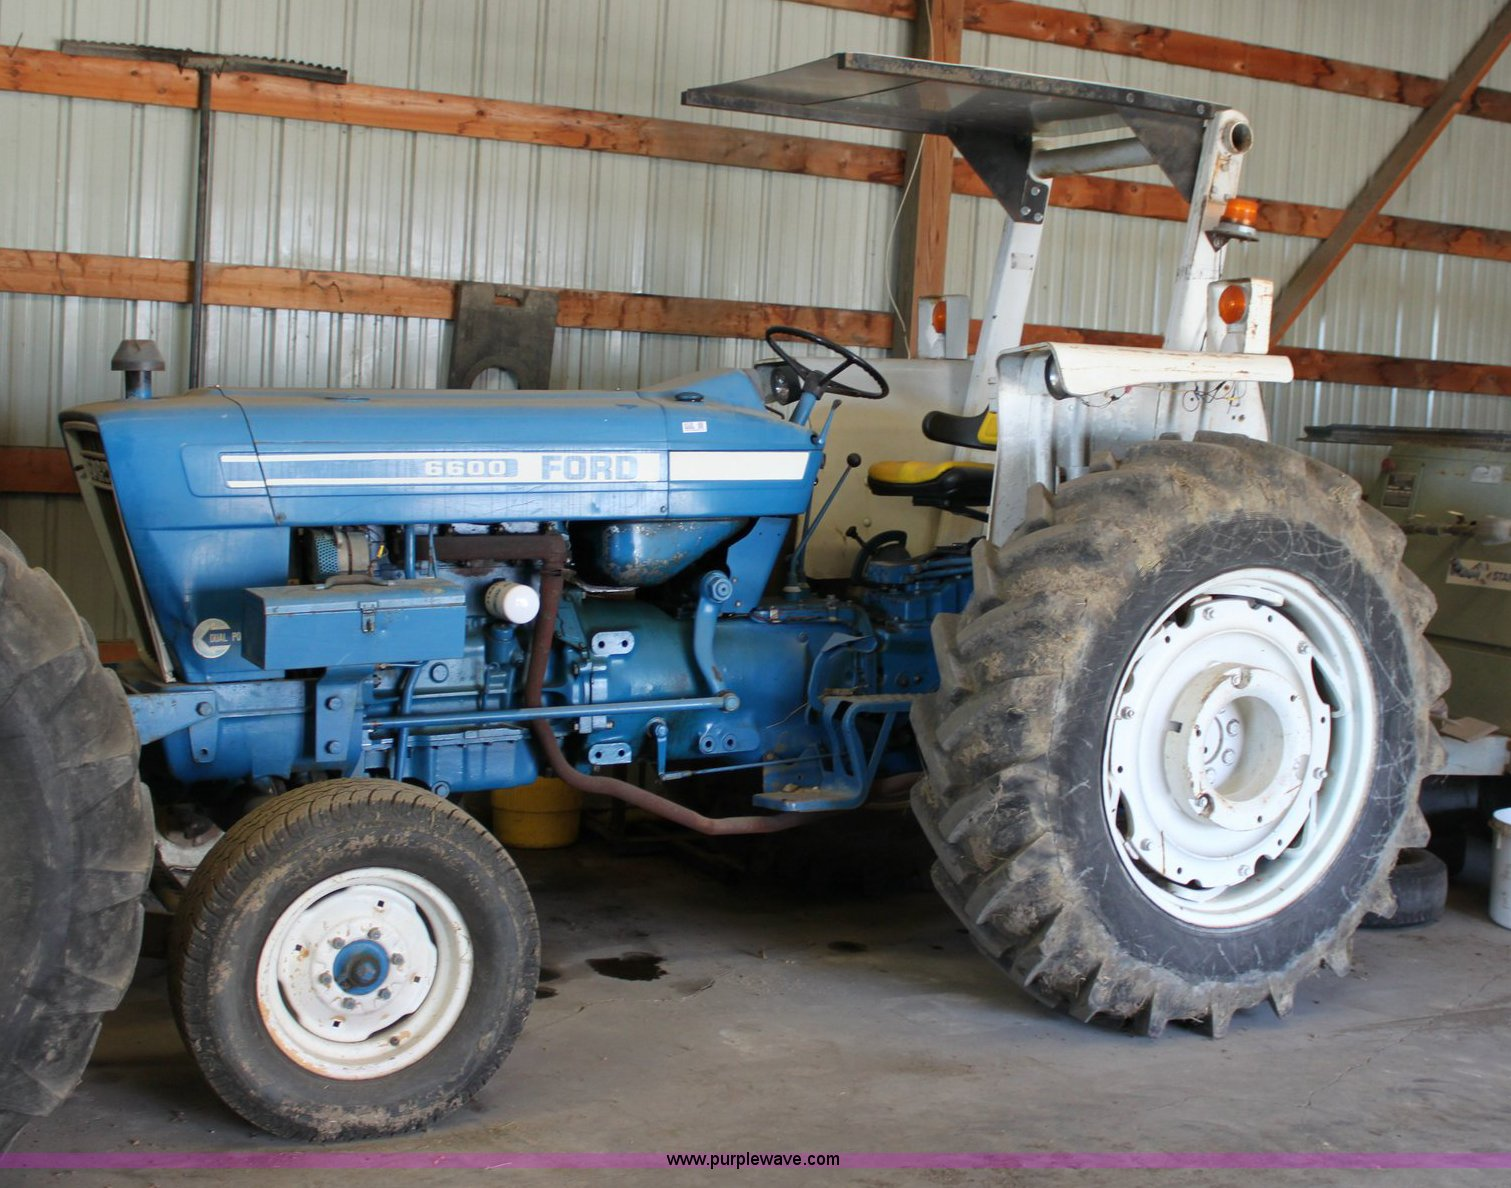 6600 Ford Tractors For Sale Tractor Wiring Diagram 6528 Image Item